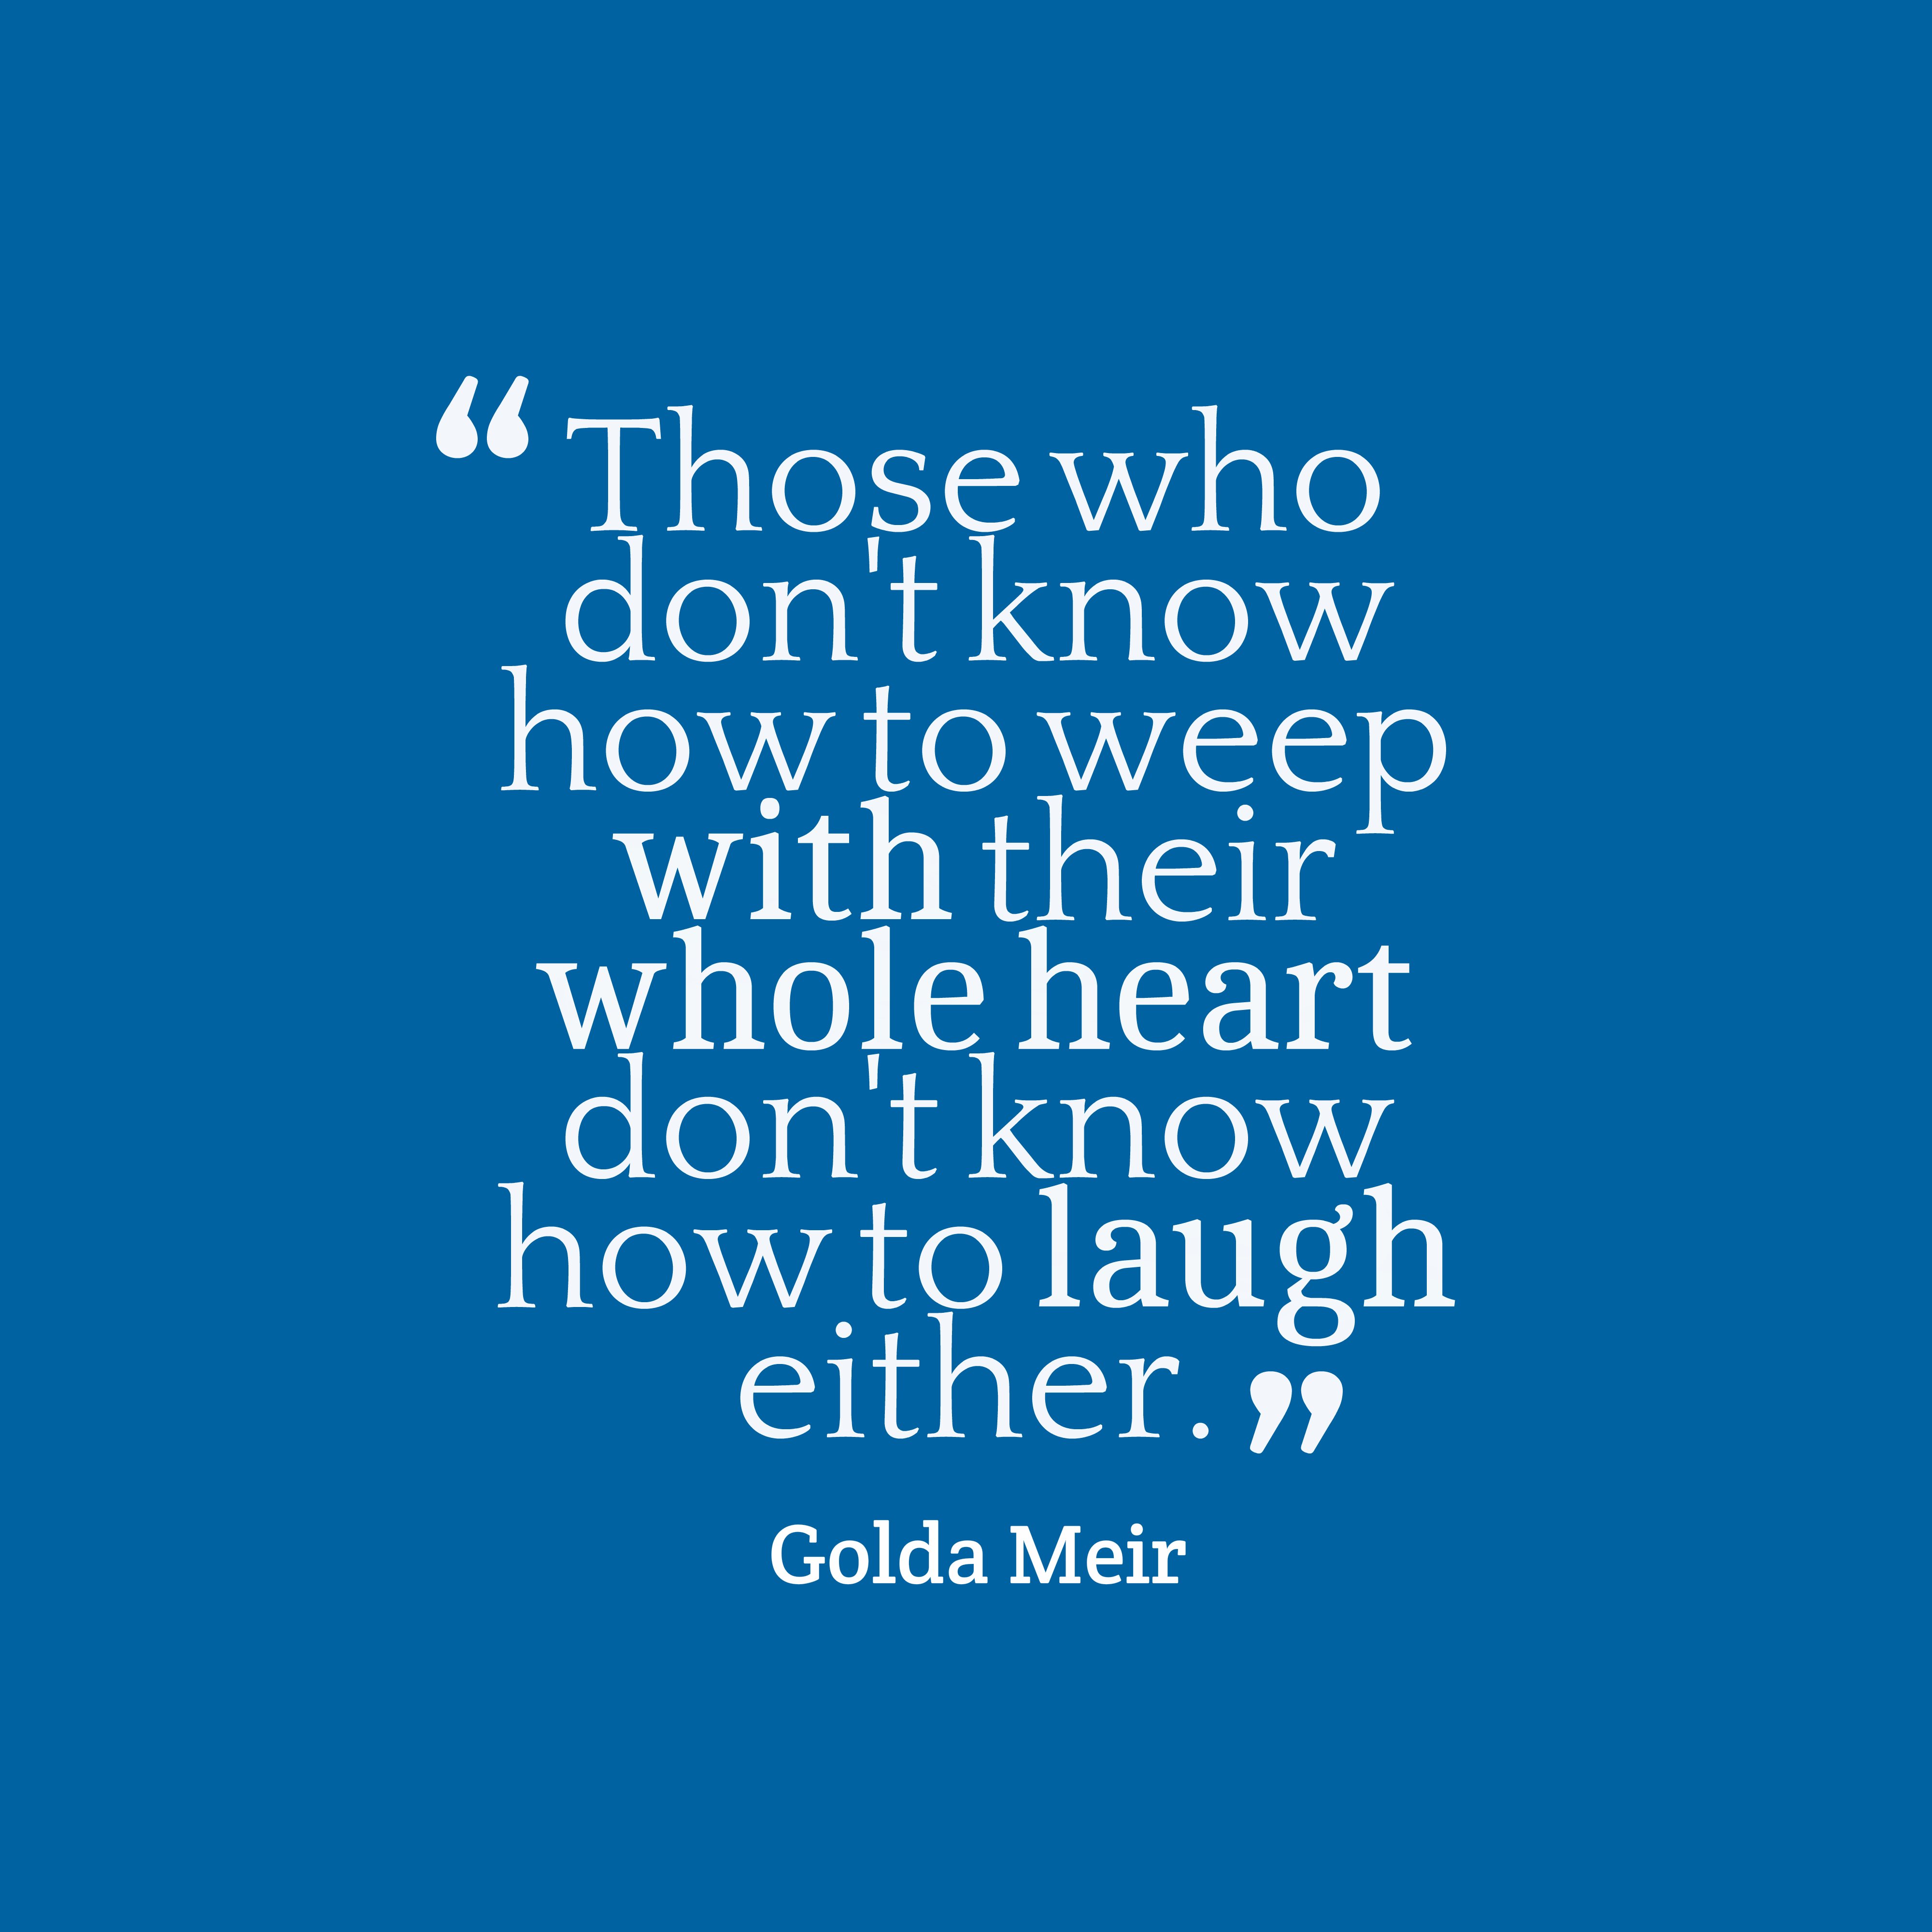 Quotes image of Those who don't know how to weep with their whole heart don't know how to laugh either.